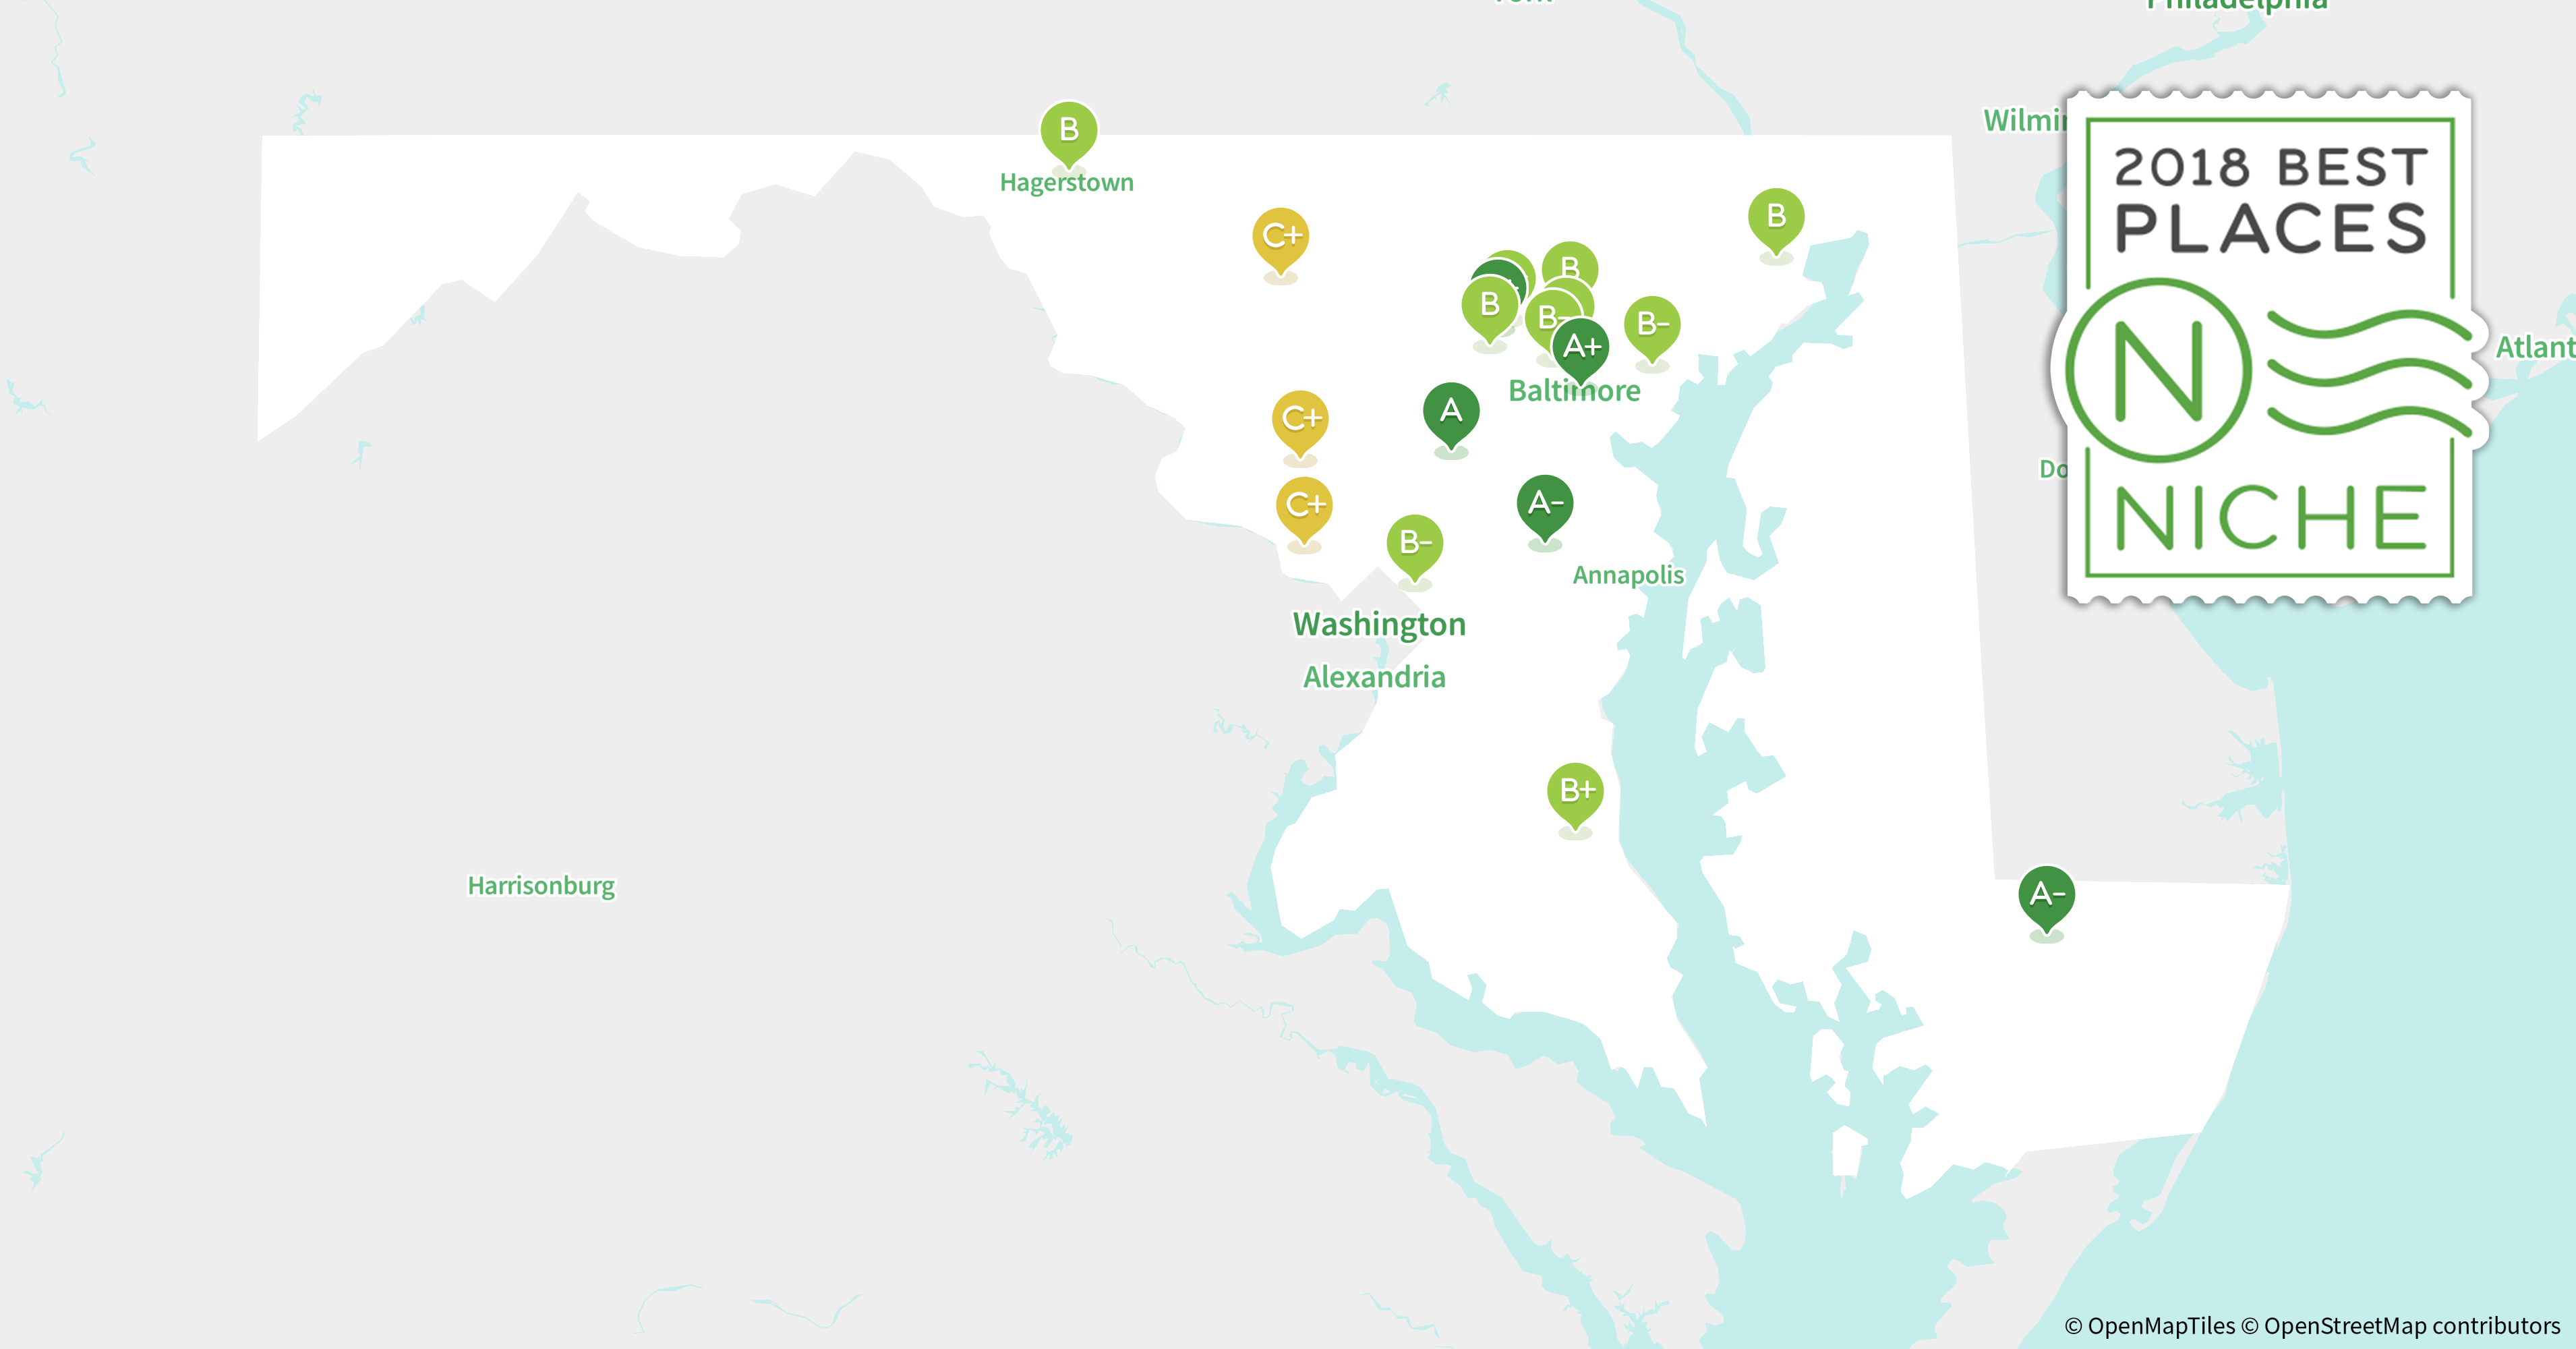 Best Places To Retire In Maryland Niche - Marriland state